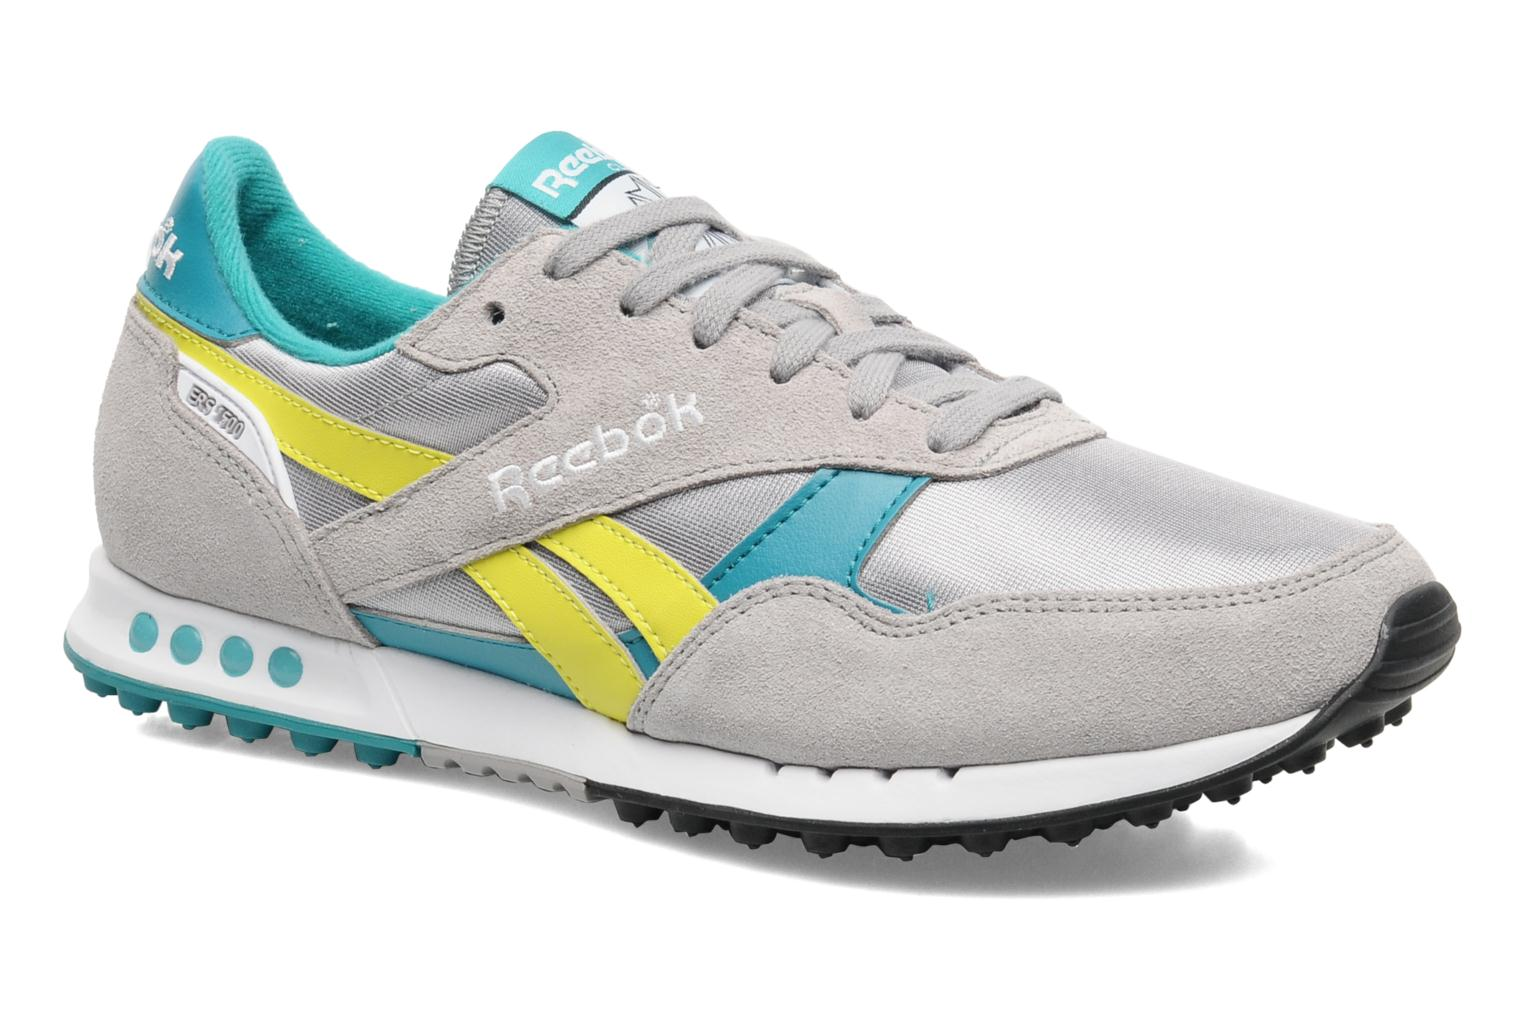 Ers 1500 Tin Grey-Teal Gem-Solar Yellow